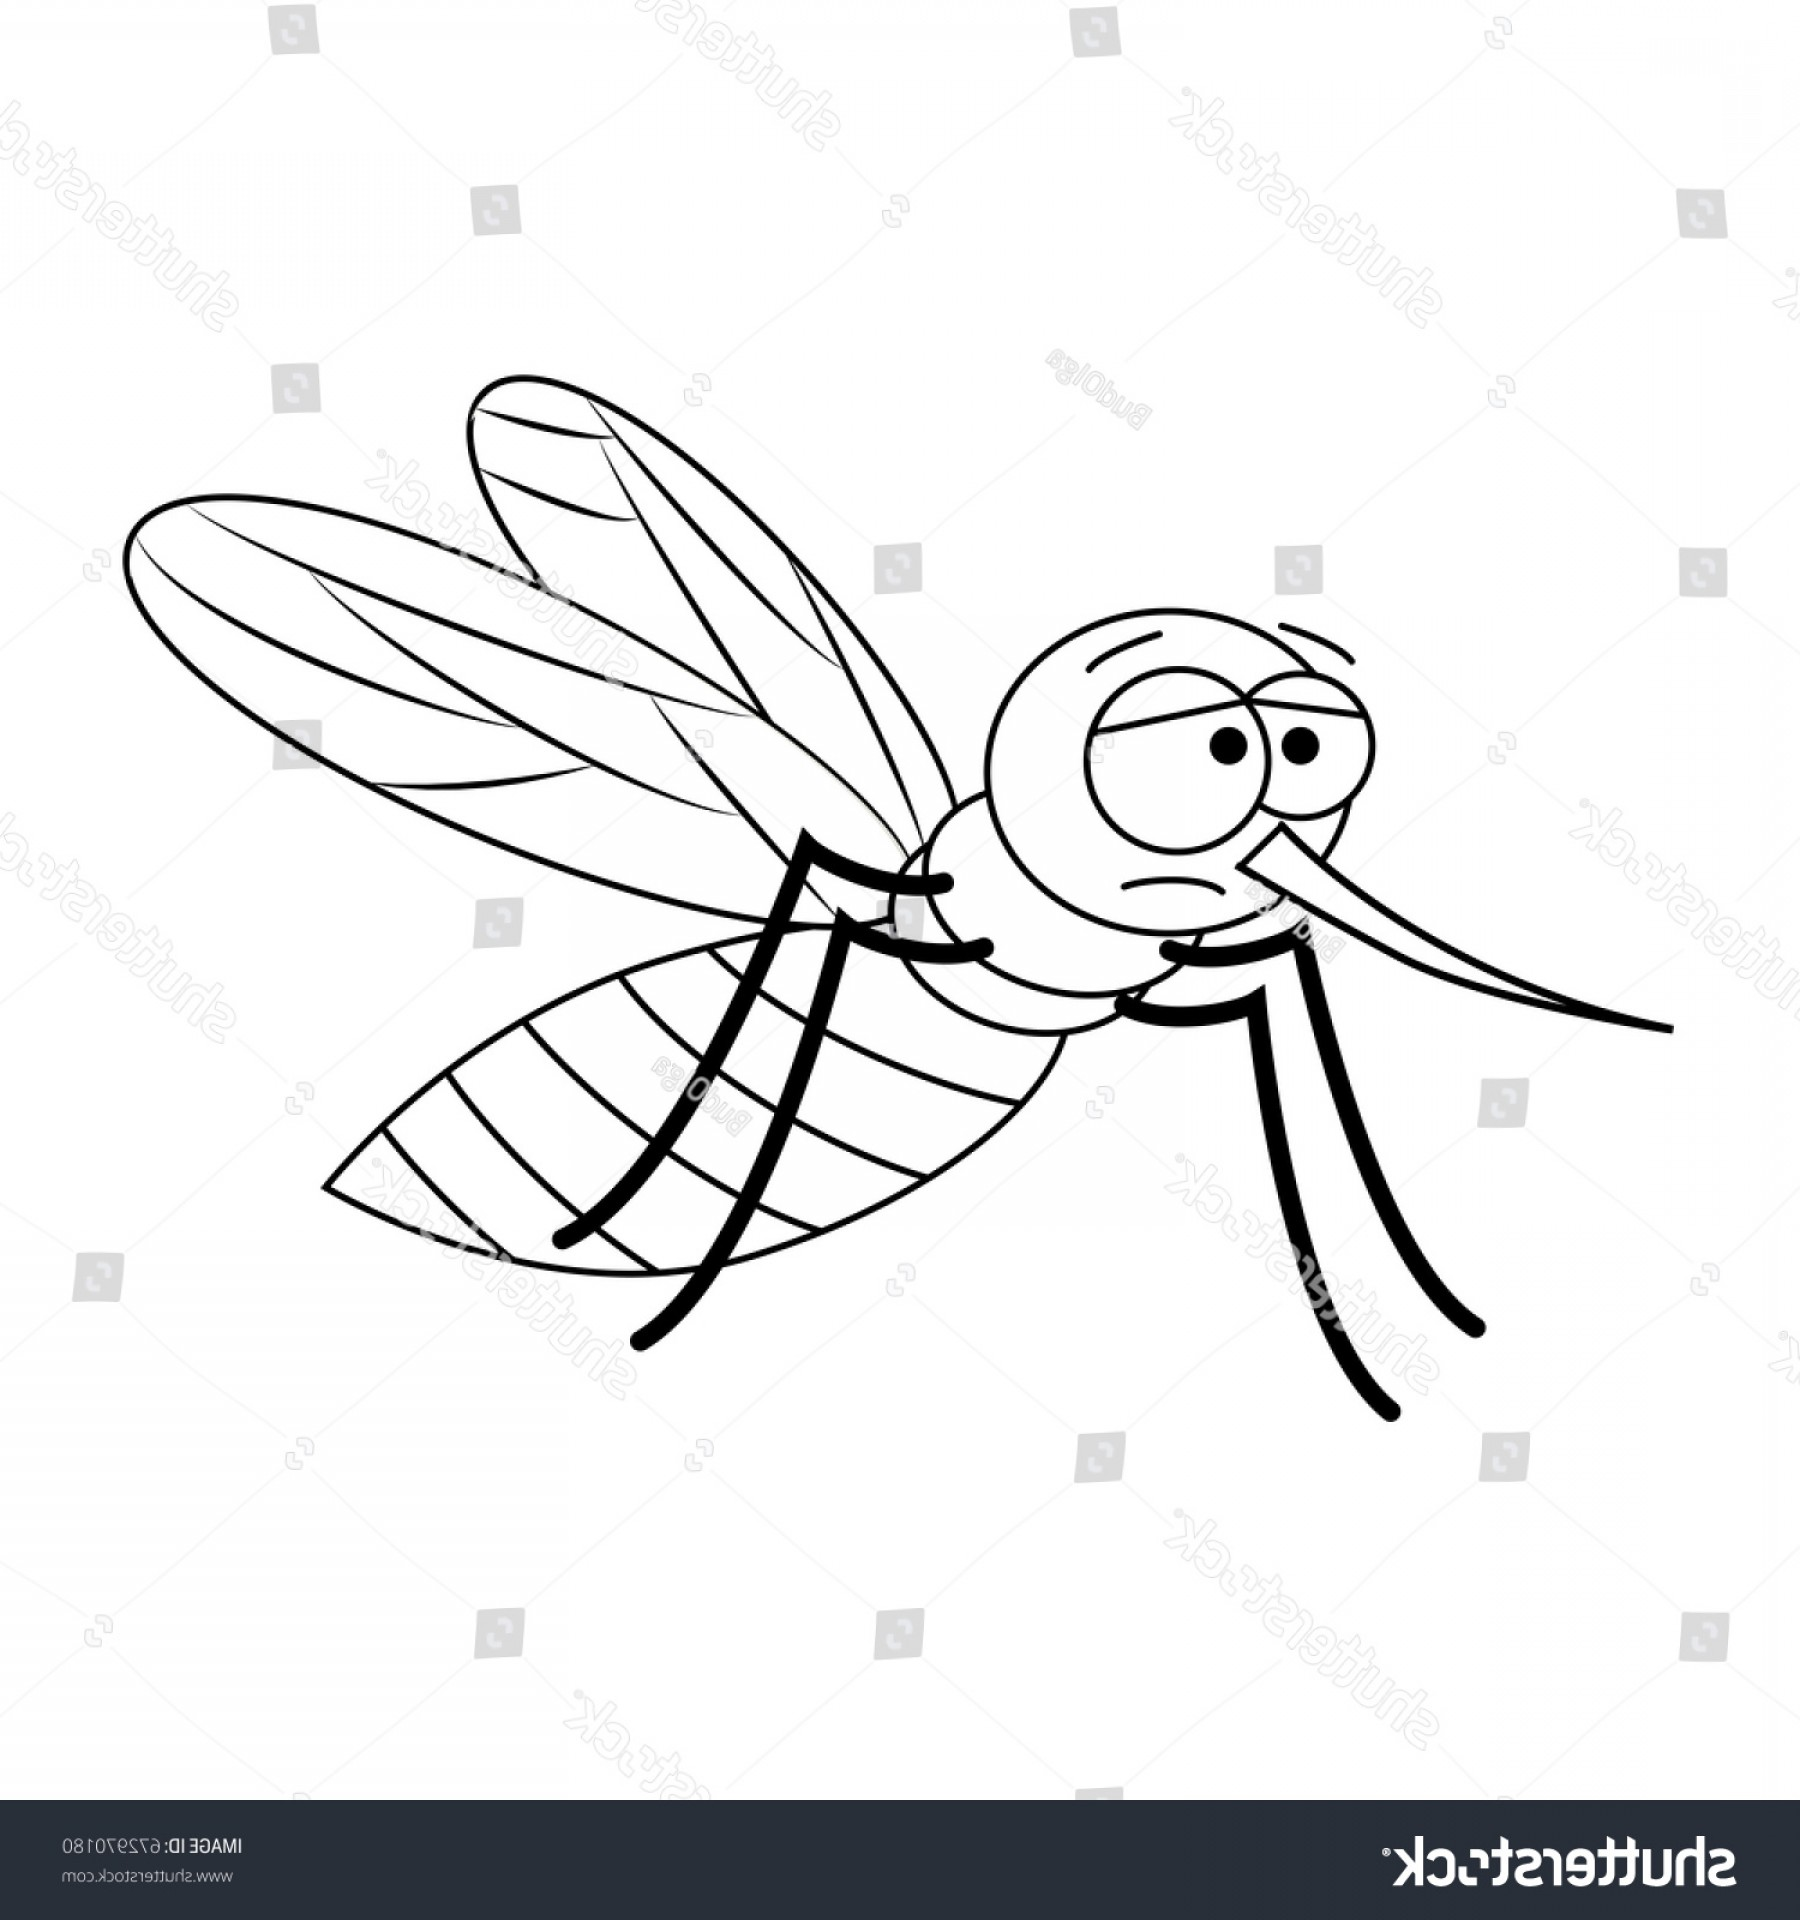 Mosquito Vector Worksheet: Colorless Funny Cartoon Mosquito Vector Illustration